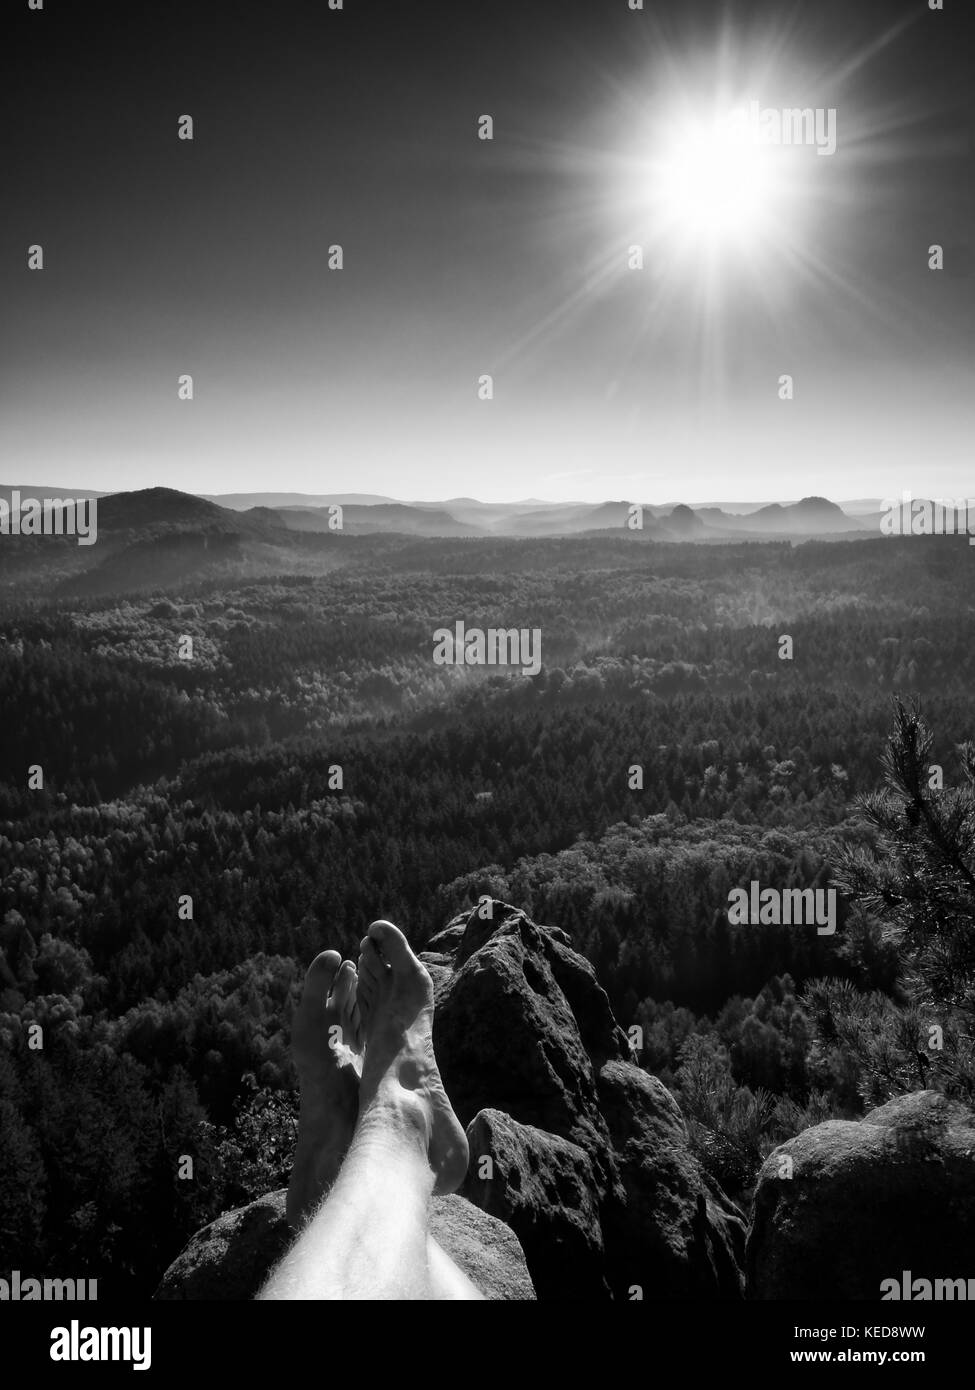 Tired legs take a rest on peak of rock. Trekking trip in hot summer weather. Long forest valley in hilly landscape - Stock Image